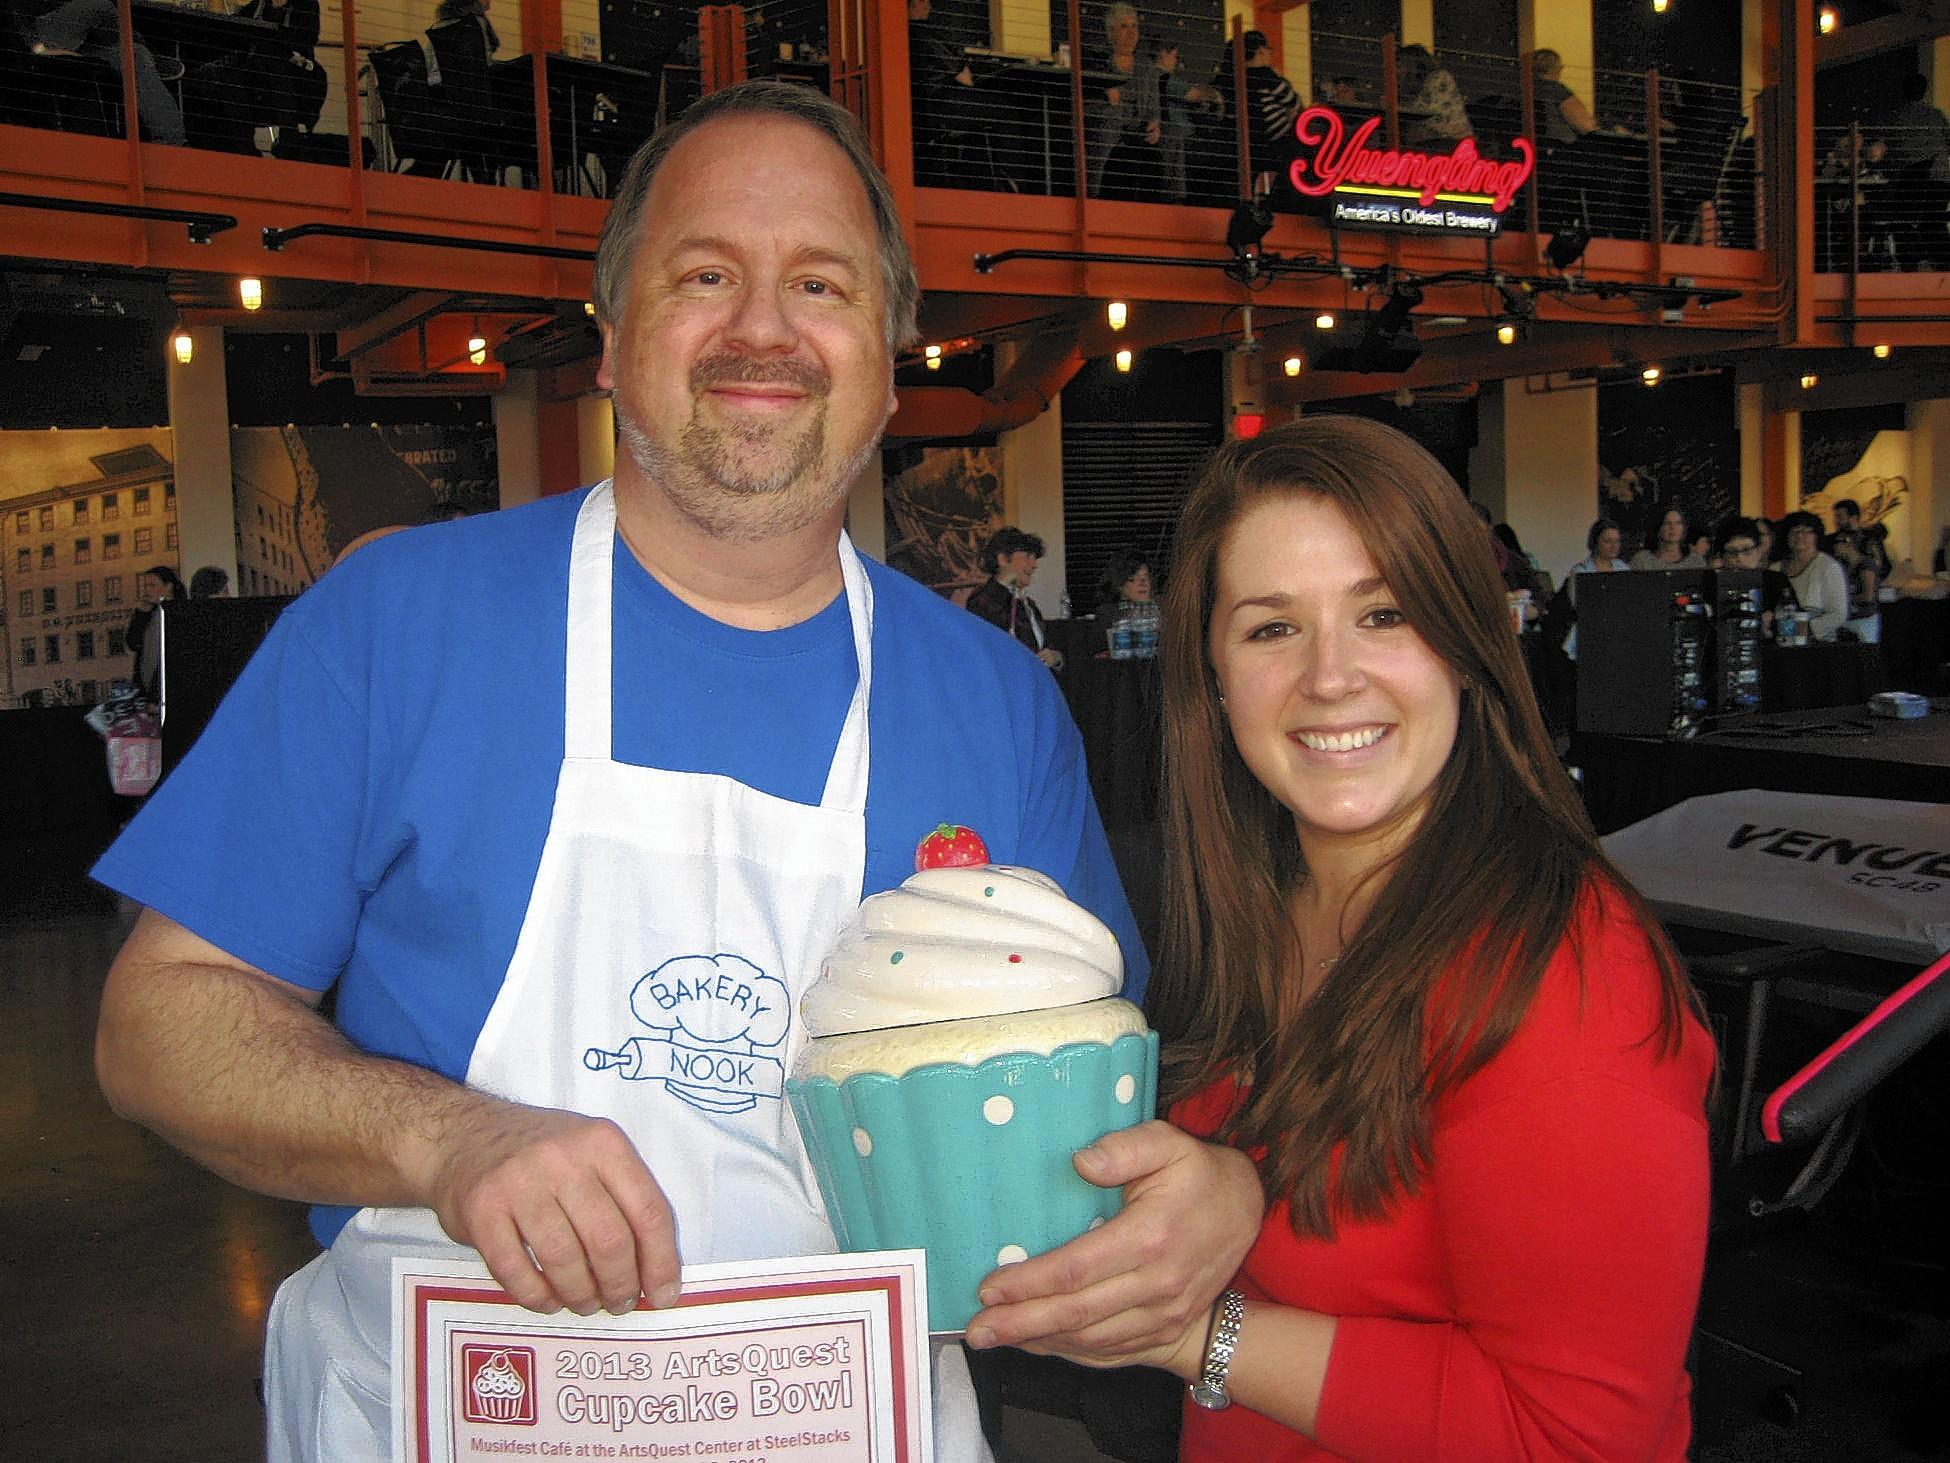 Barry Kuntz from the Bakery Nook is congratulated by Samantha Kulp, ArtsQuest membership manager, for taking the People's Choice Award at ArtsQuest's sold-out Cupcake Bowl II on Dec. 28 in the Musikfest Cafe at the ArtsQuest Center at SteelStacks. The Nook offered up a Sweet Strawberry Crème Cupcake.